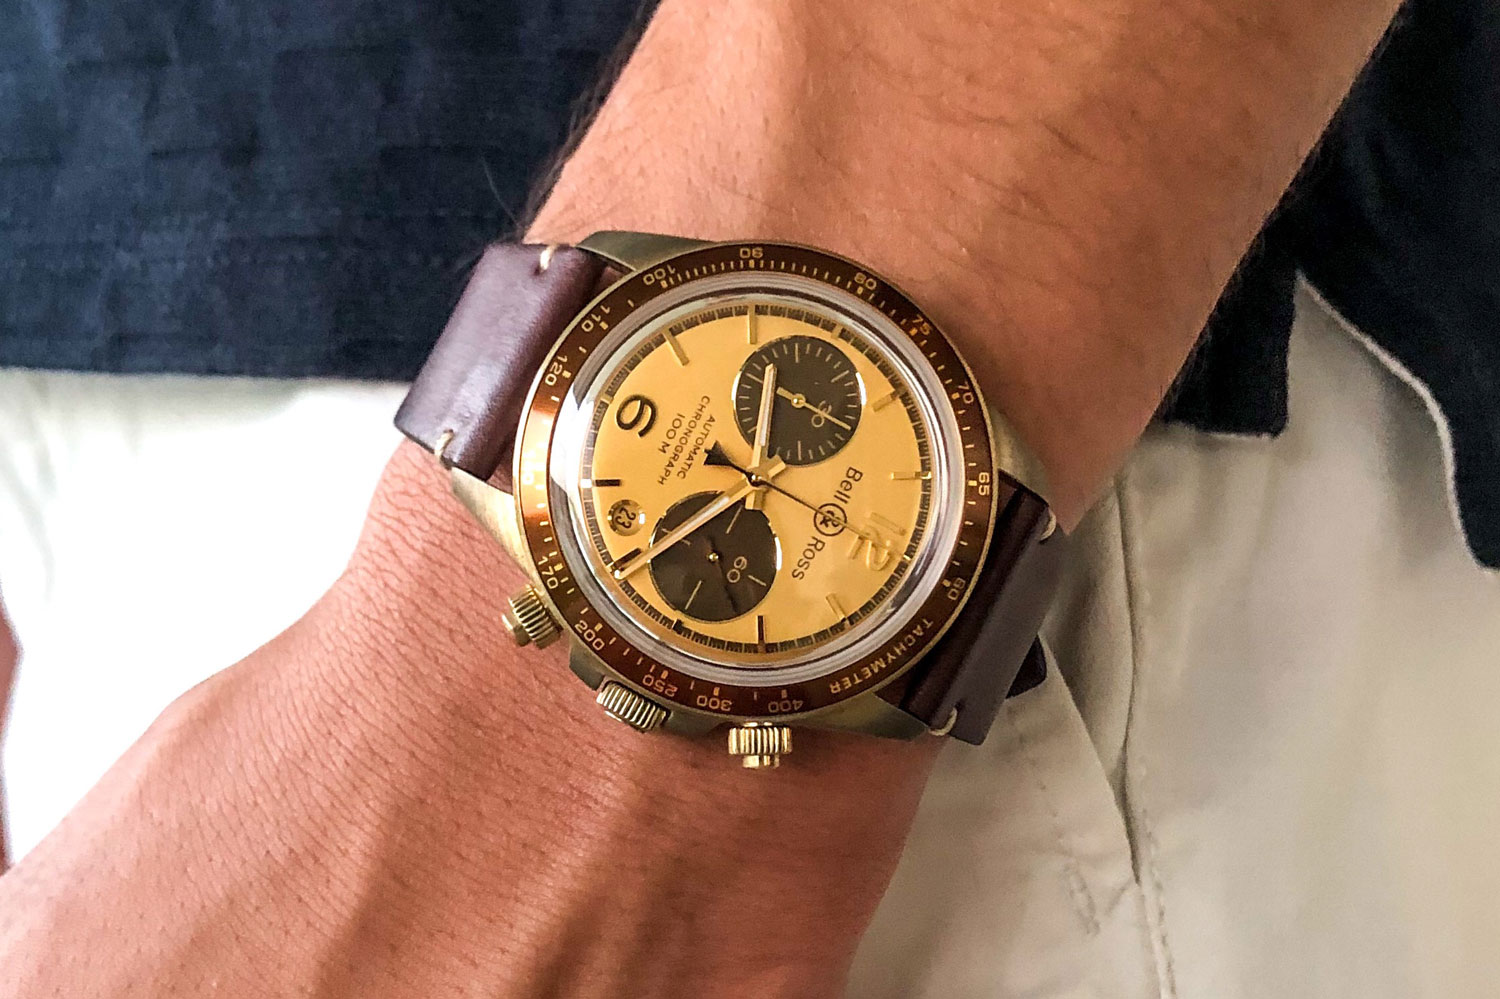 Azzam Jamil (a.k.a. @tourbillonlifestyle) rocking his El Mirage chronograph over the summer months of 2019